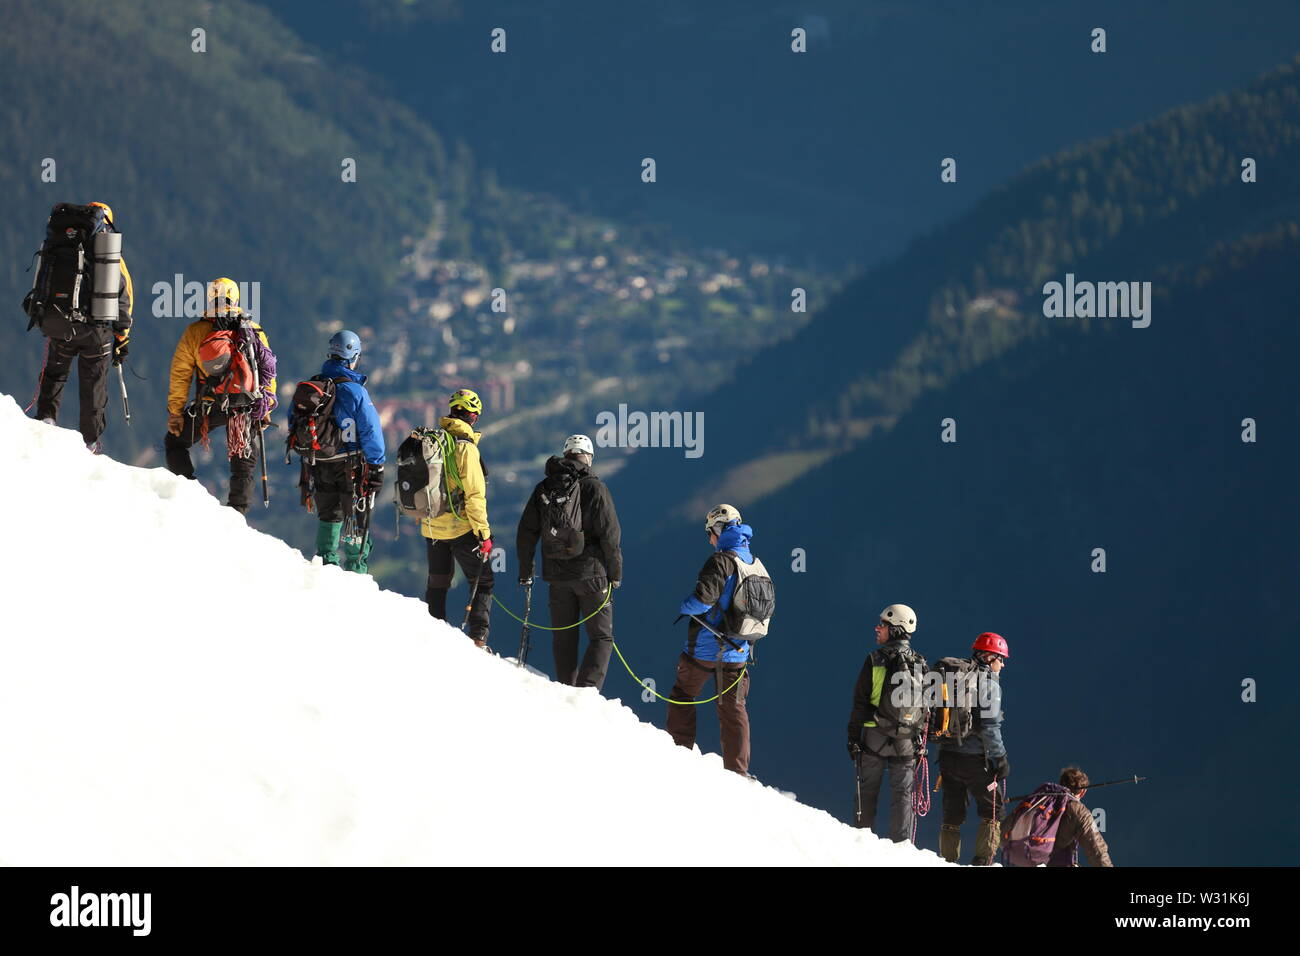 Tethered Mountaineers Aiguille du Midi - Stock Image